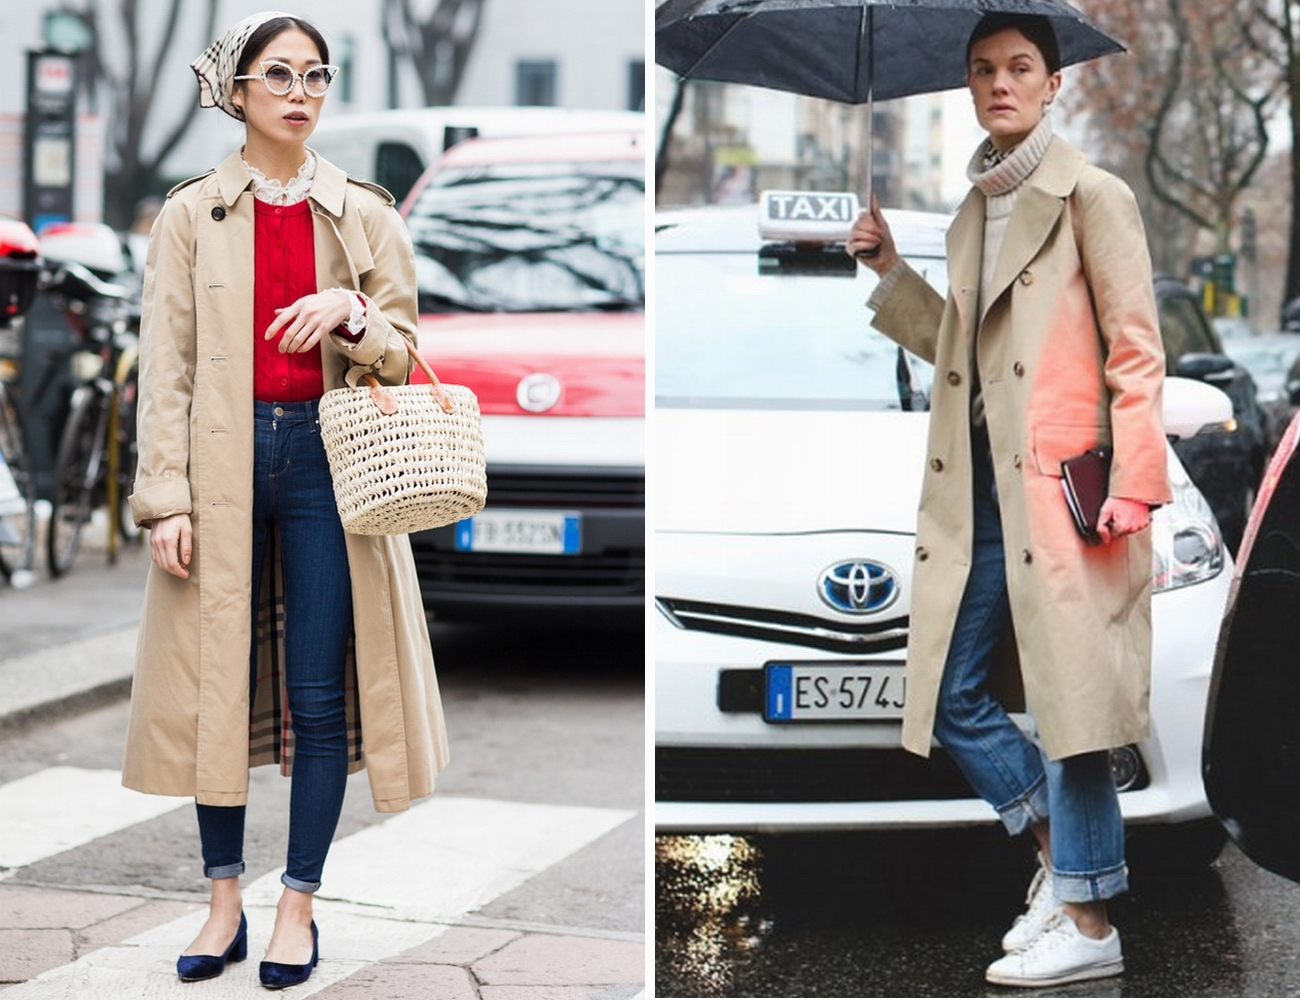 STREETSTYLE: MILAN FASHION WEEK-63064-mydailystyle